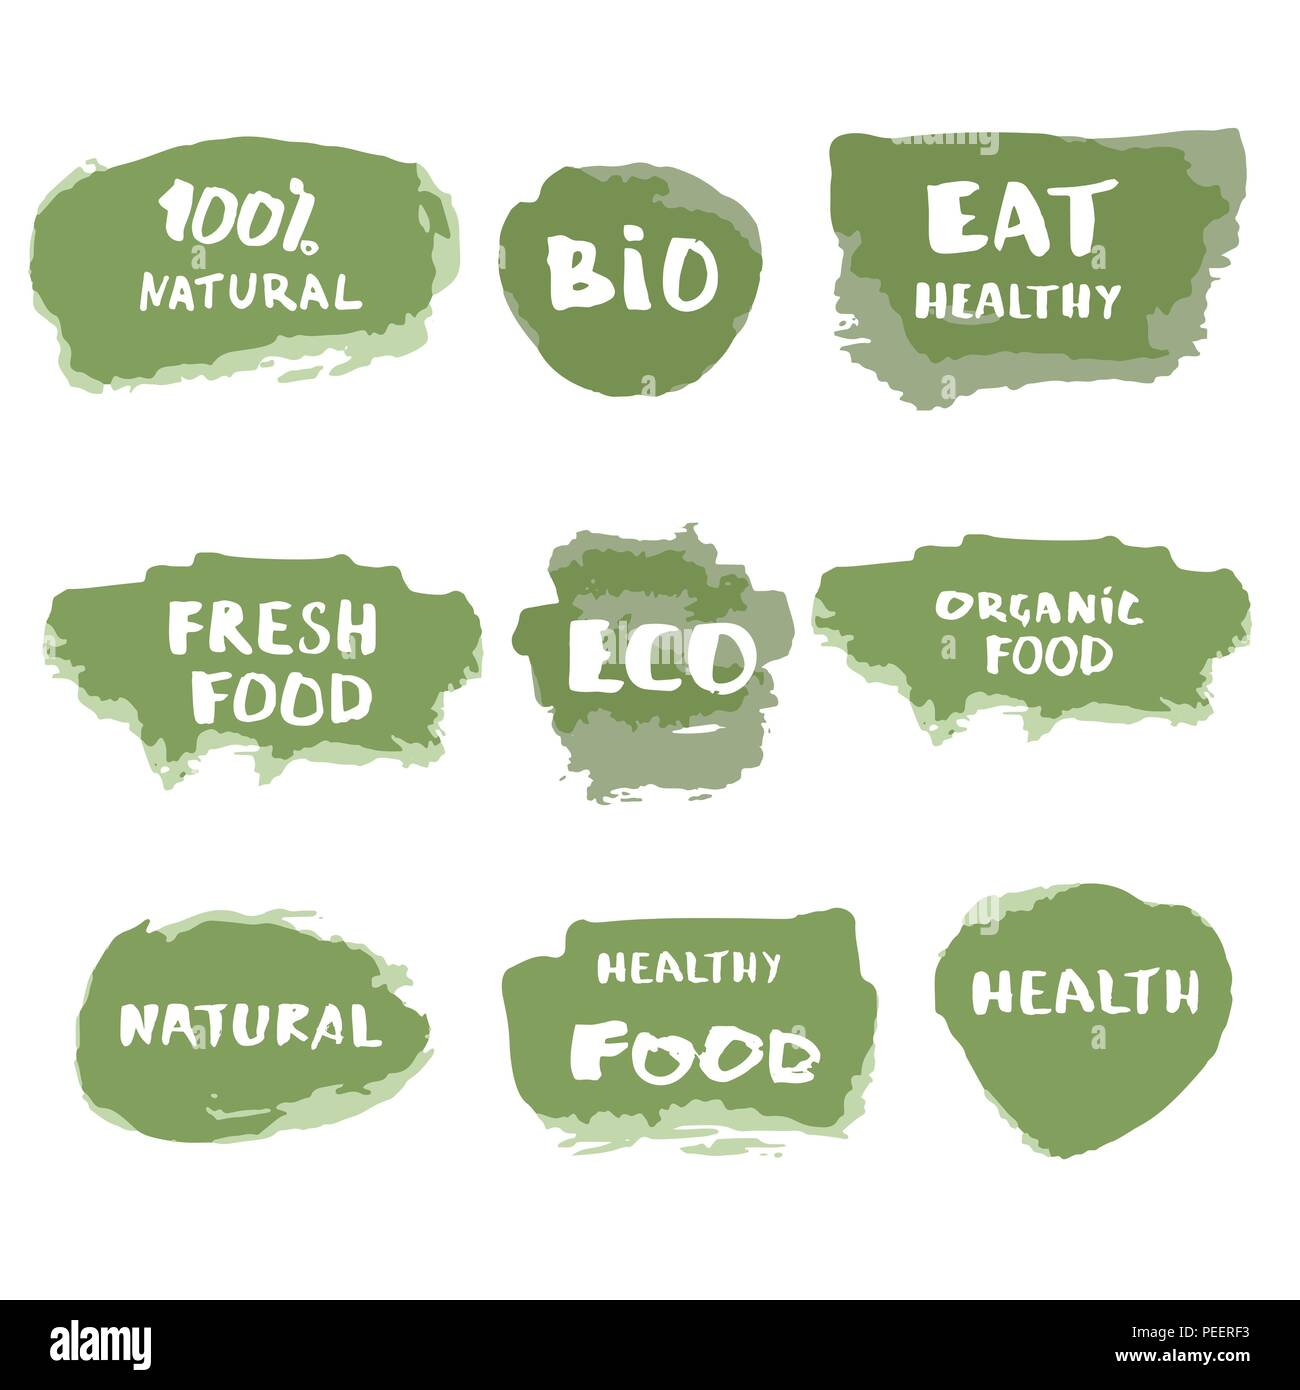 Healthy Living Poster Flyer Background Cut Out Stock Images